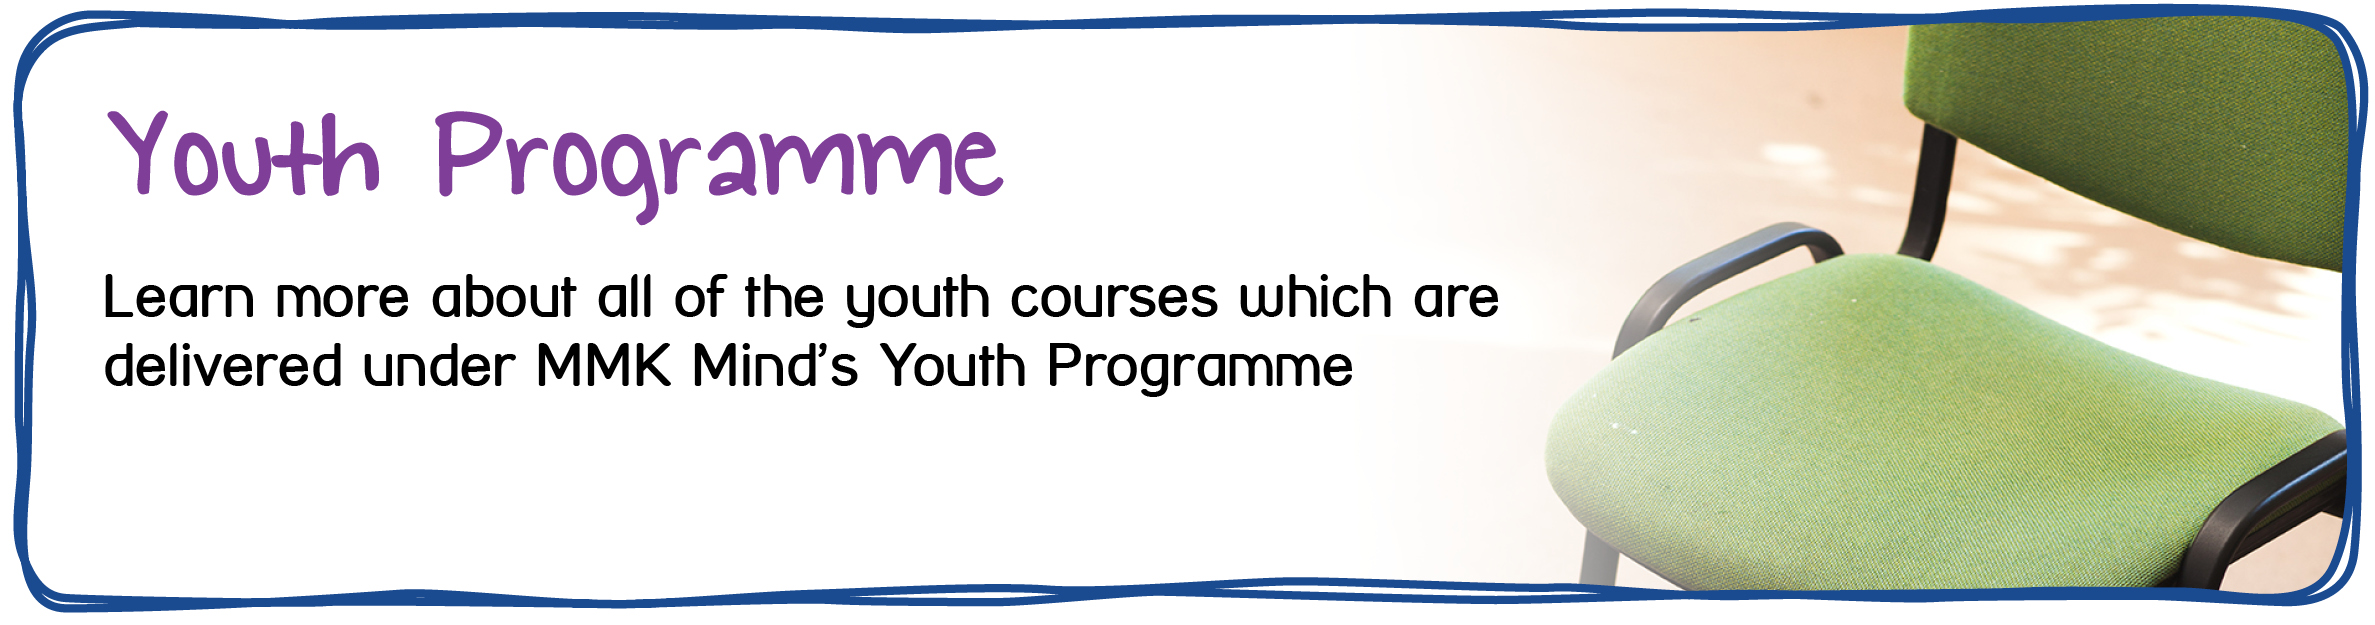 Maidstone and Mid-Kent Mind - Youth Programme - learn more about all of the youth courses which are delivered under MMK Mind's Youth Programme.